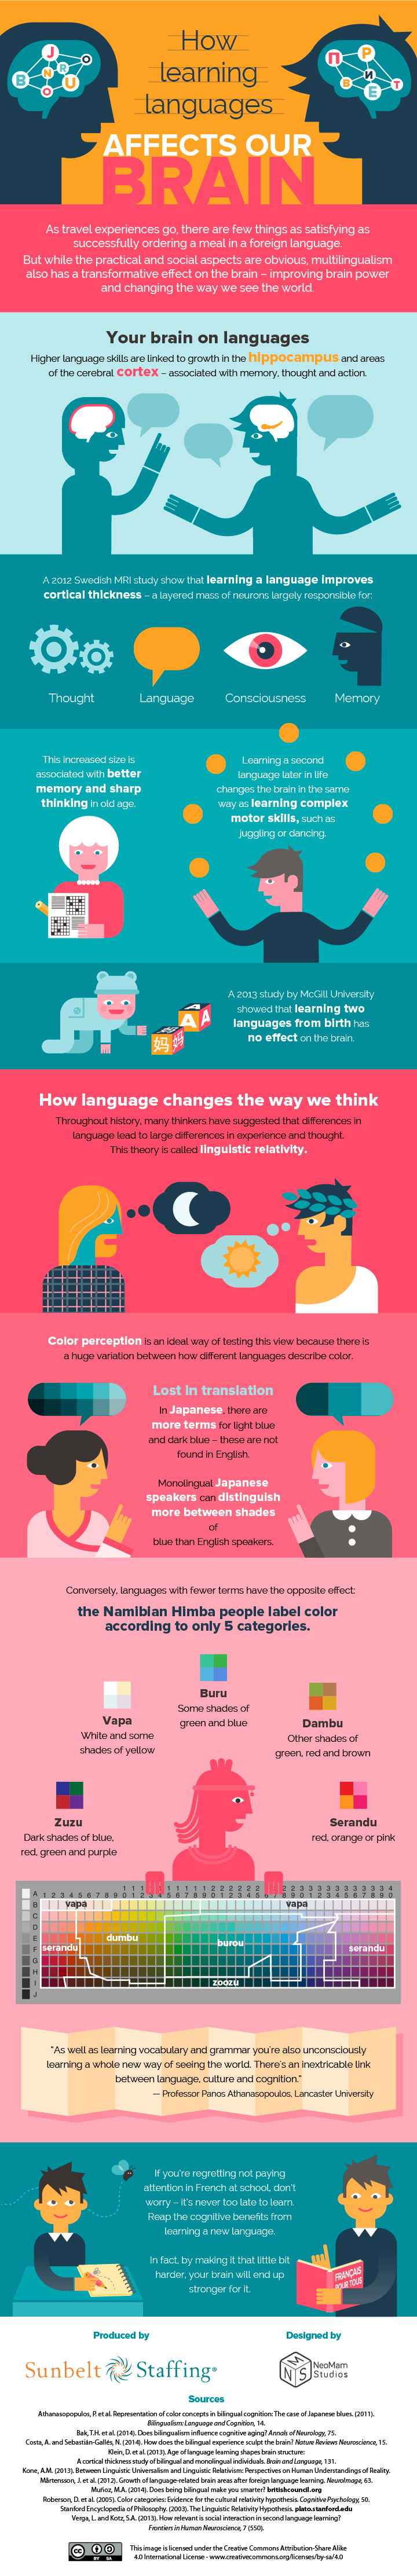 how-learning-languages-affects-our-brains